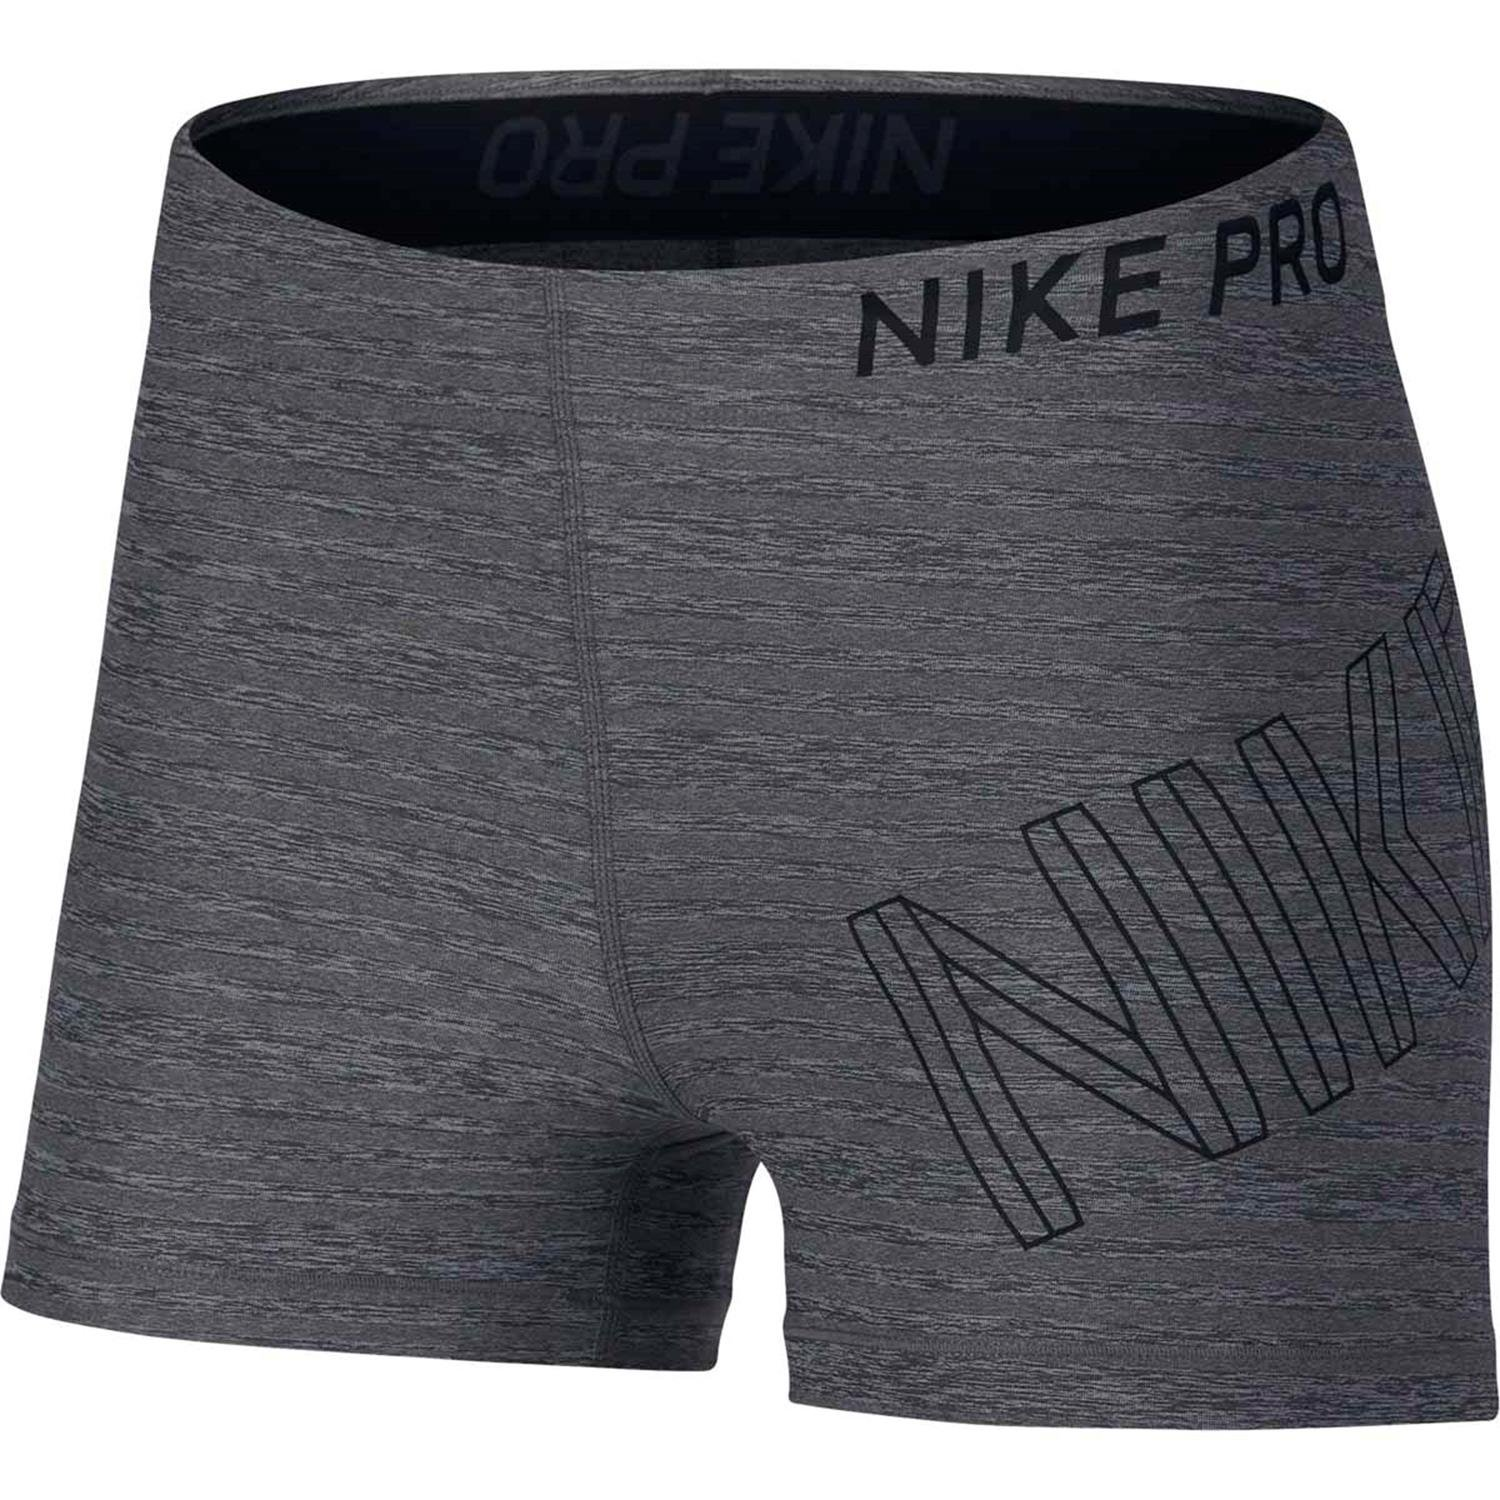 NIKE Pro Women's Training Shorts 3IN (Carbon Heather, M)